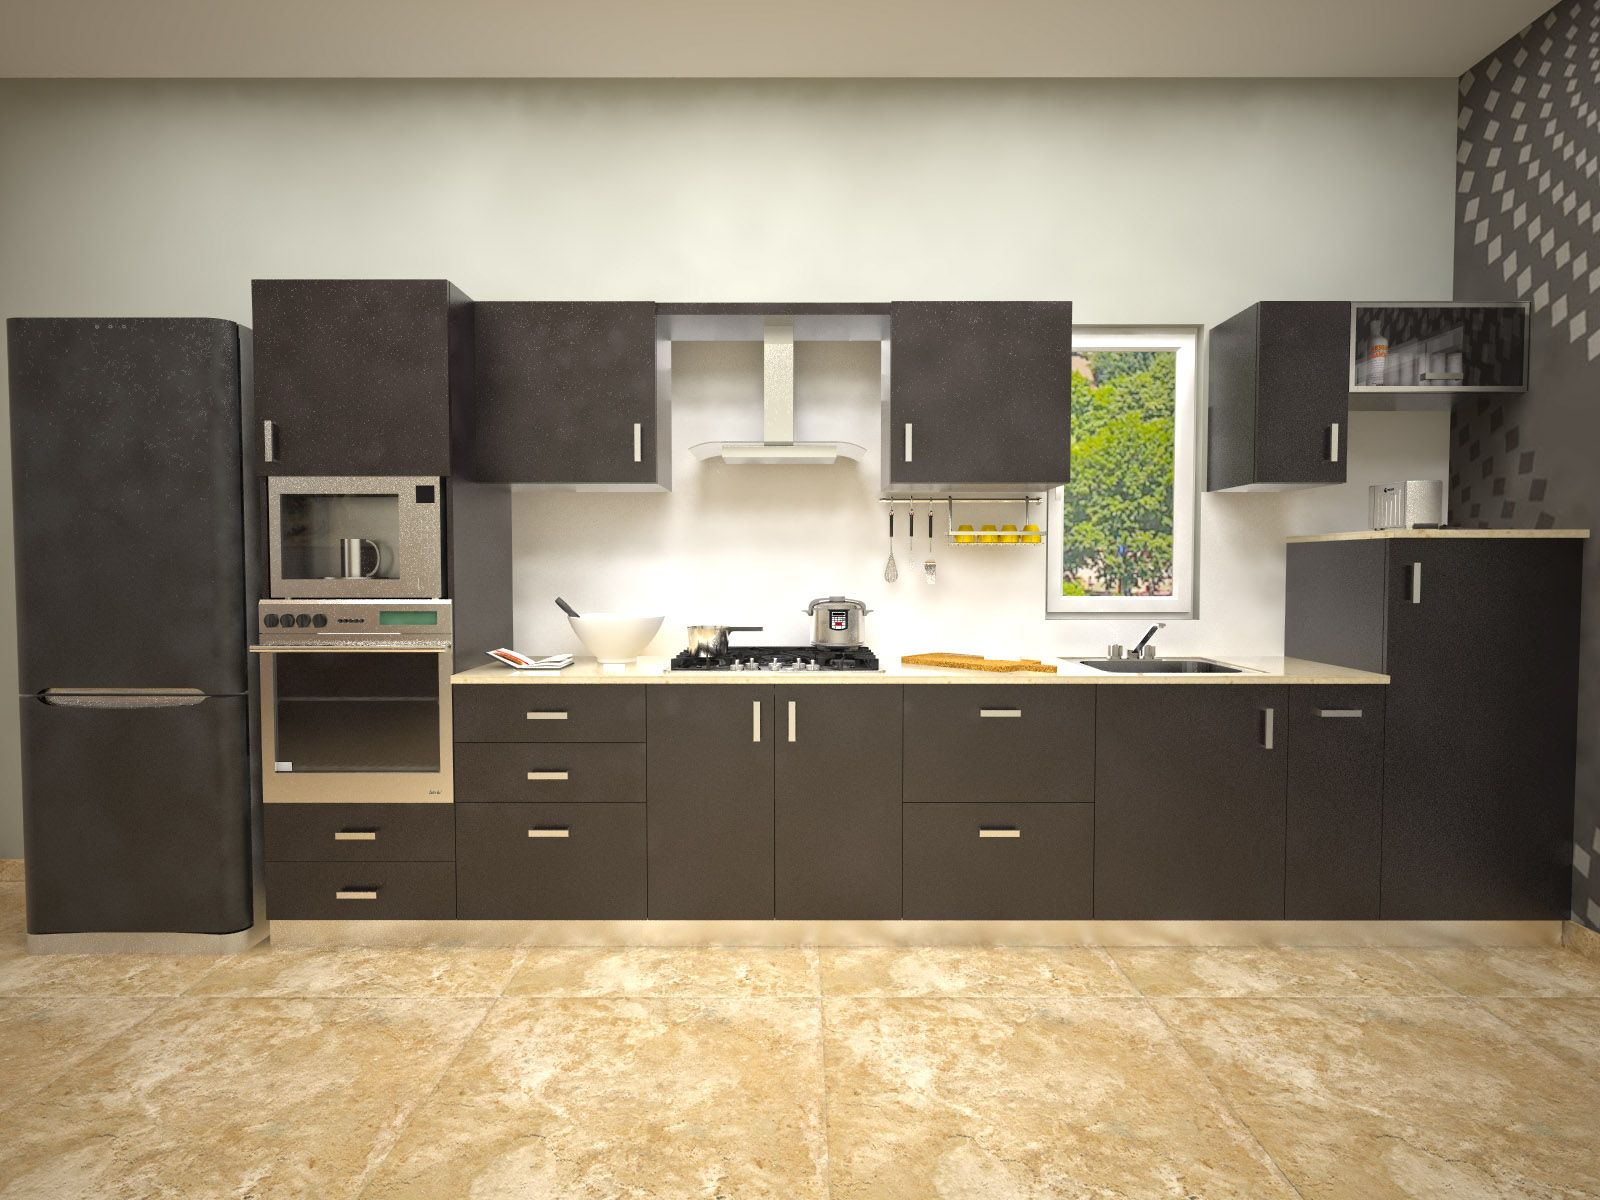 Modular Kitchen Design Courses In India Aamoda Kitchen Gorgeously Minimal And Modular Kitchen